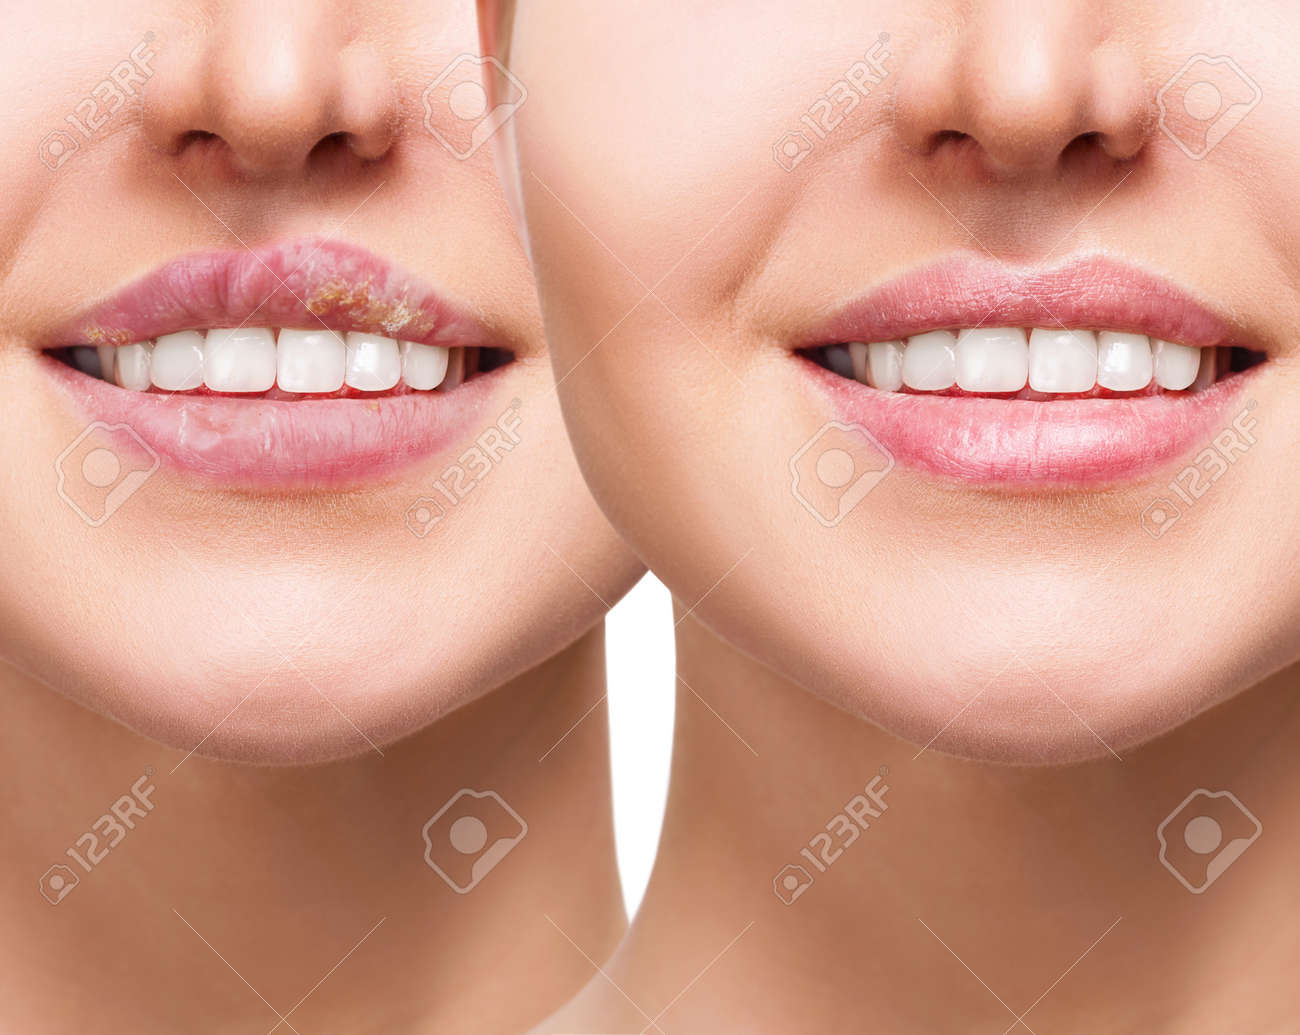 Female lips with herpes sore before and after treatment